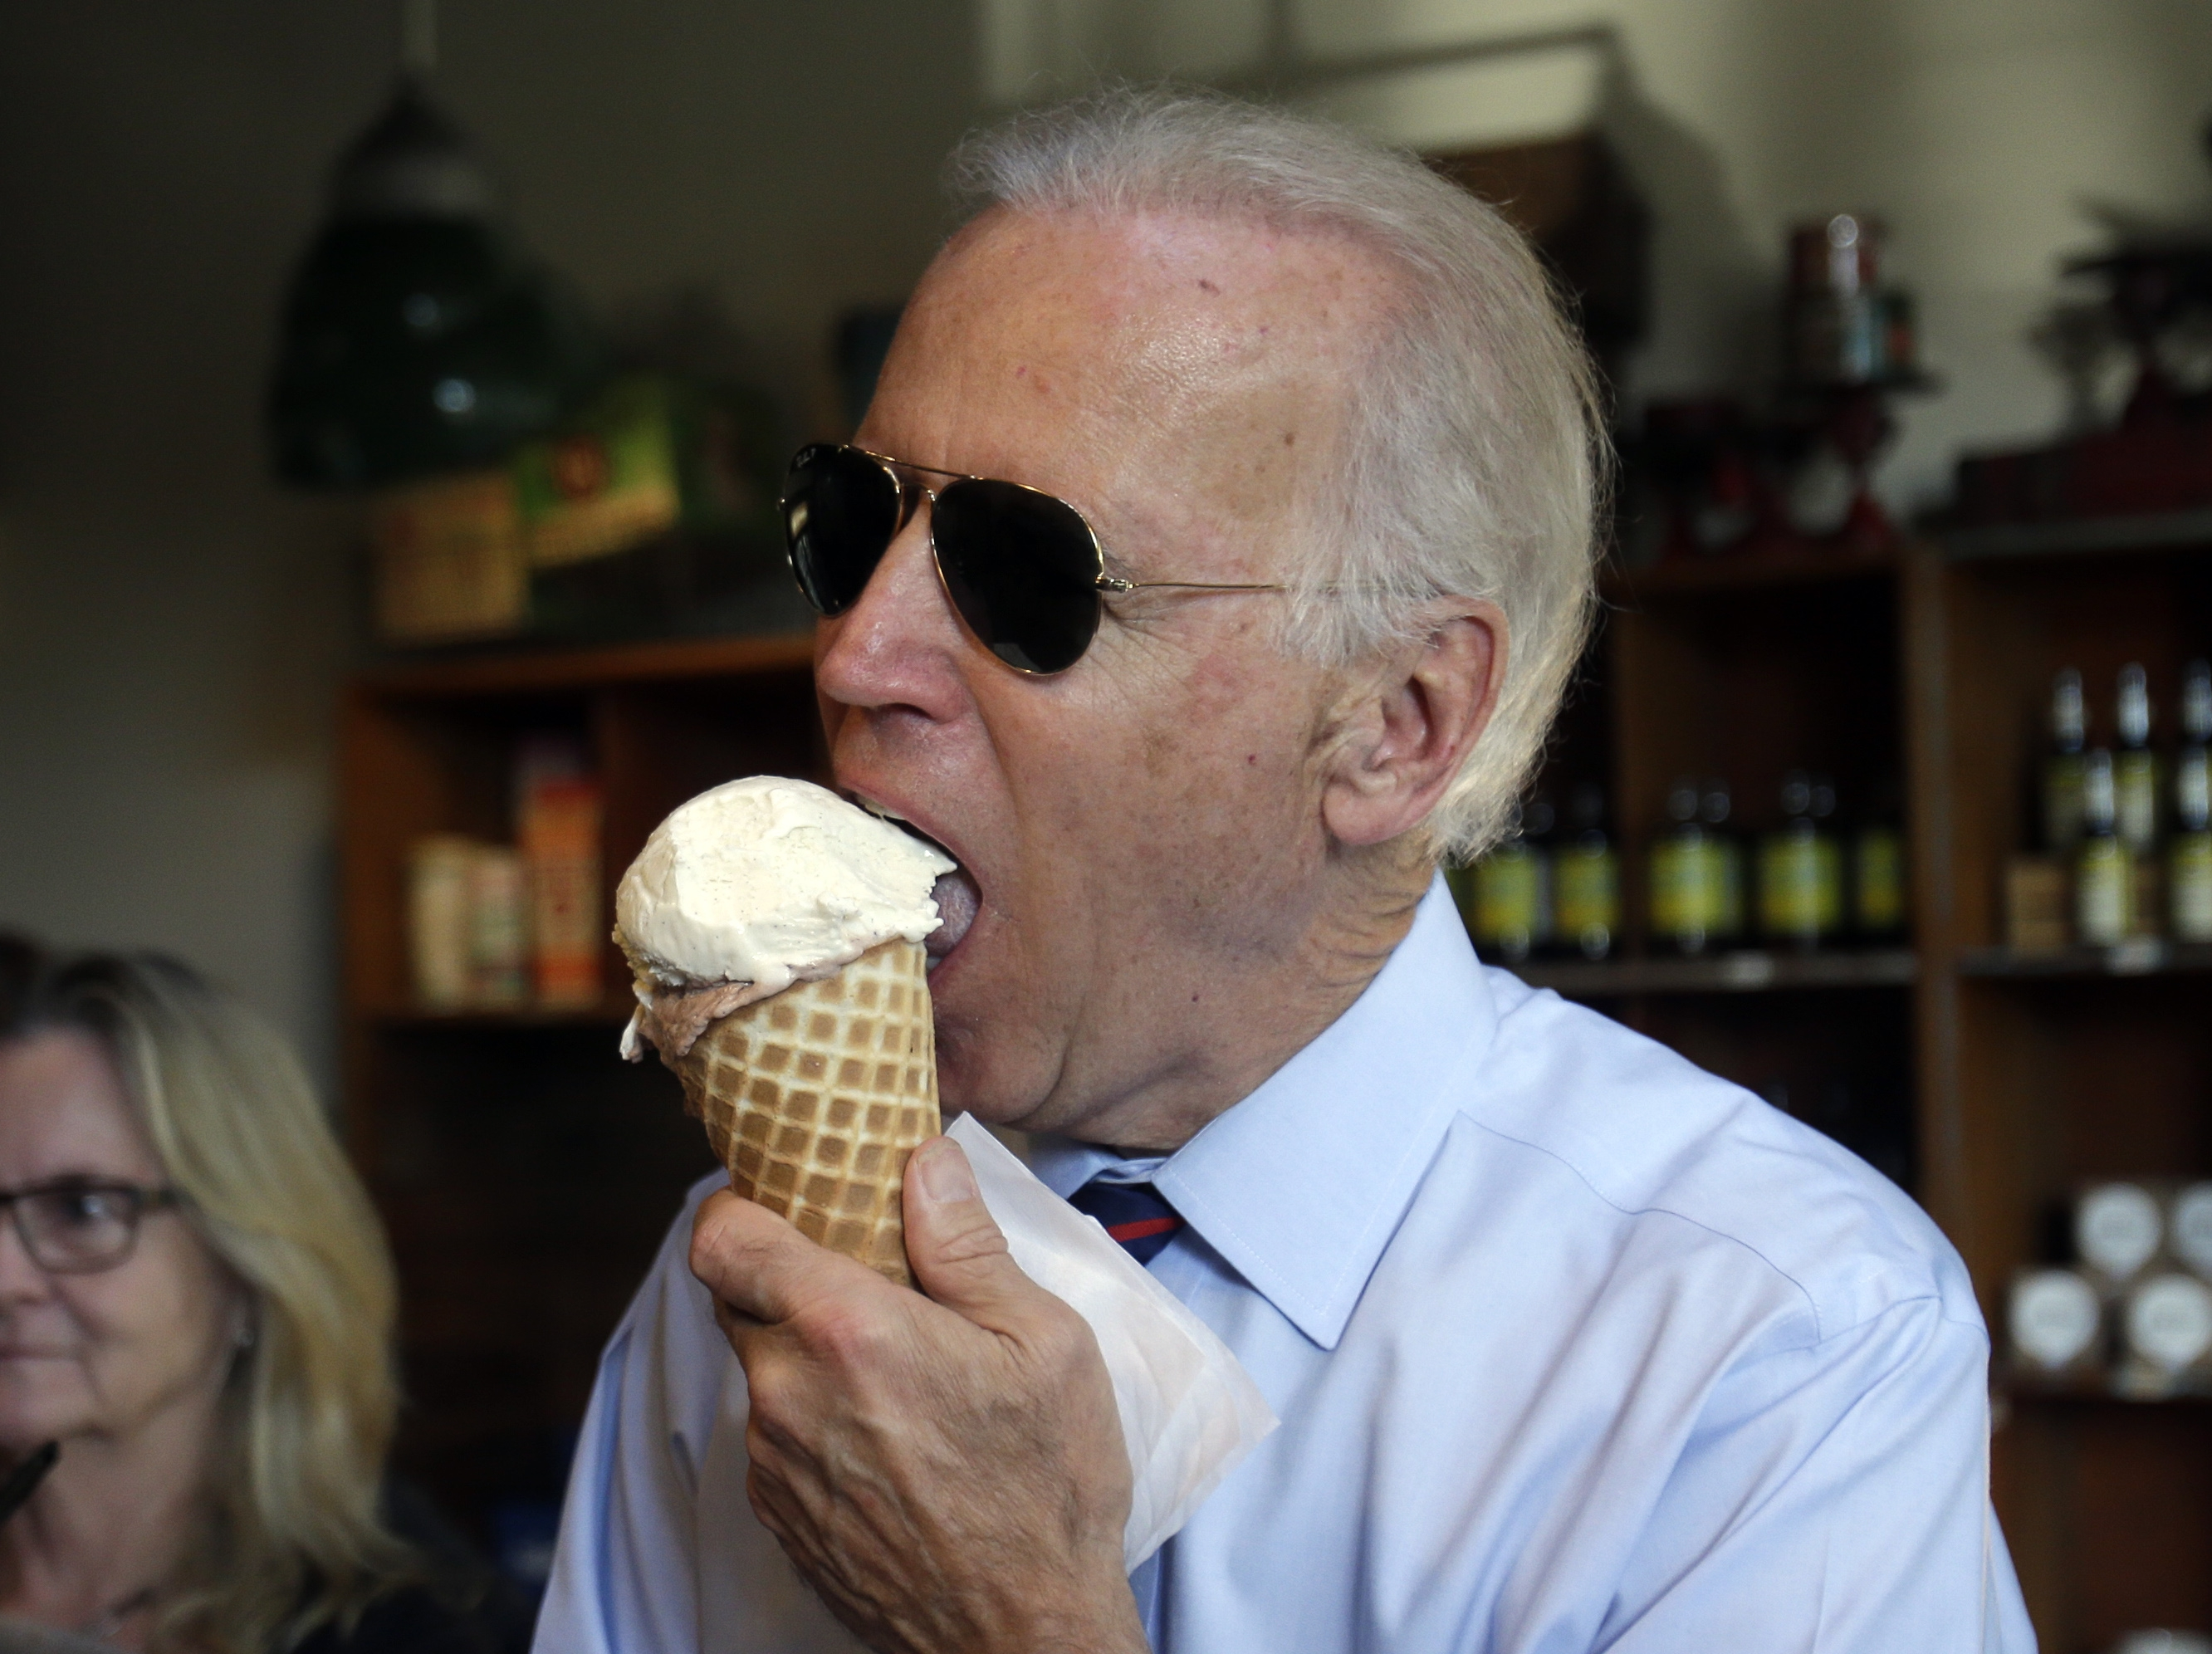 Vice President Joe Biden enjoys an ice cream cone after a campaign rally for Oregon U.S. Sen. Jeff Merkley in Portland, Ore., Wednesday, Oct. 8, 2014.